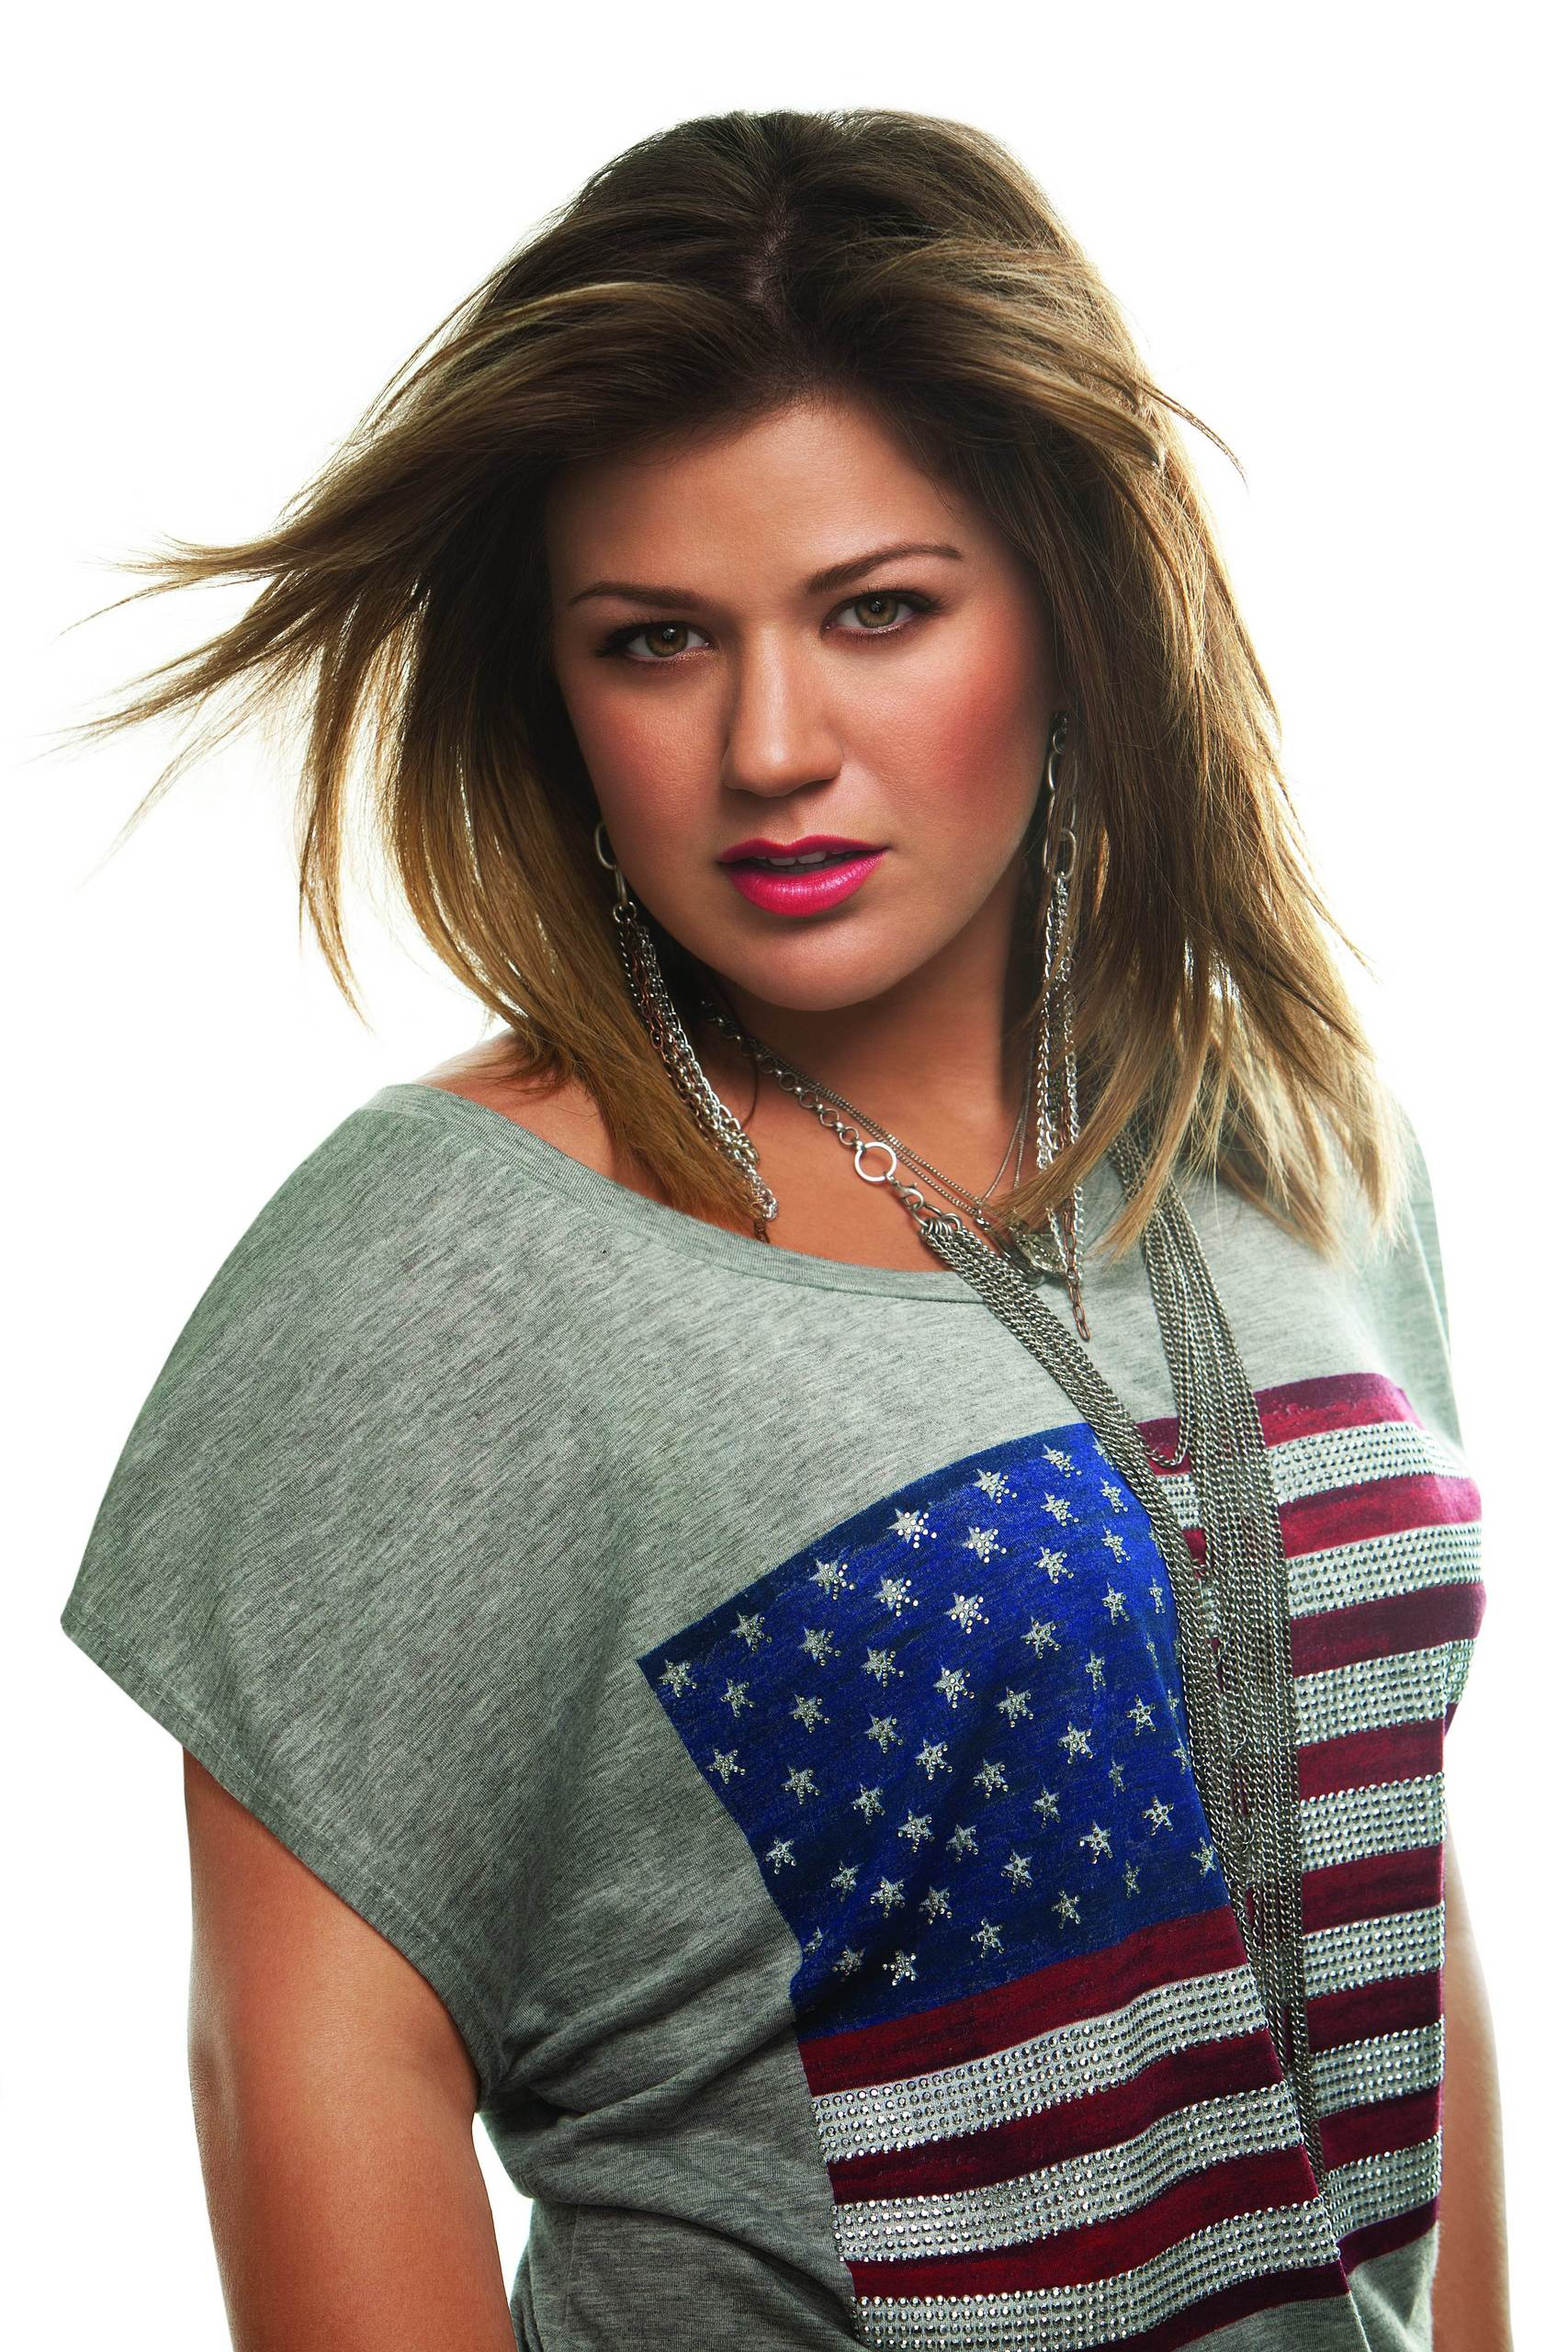 Kelly Clarkson images Kelly Clarkson 5th album photoshoot HD wallpaper and  background photos